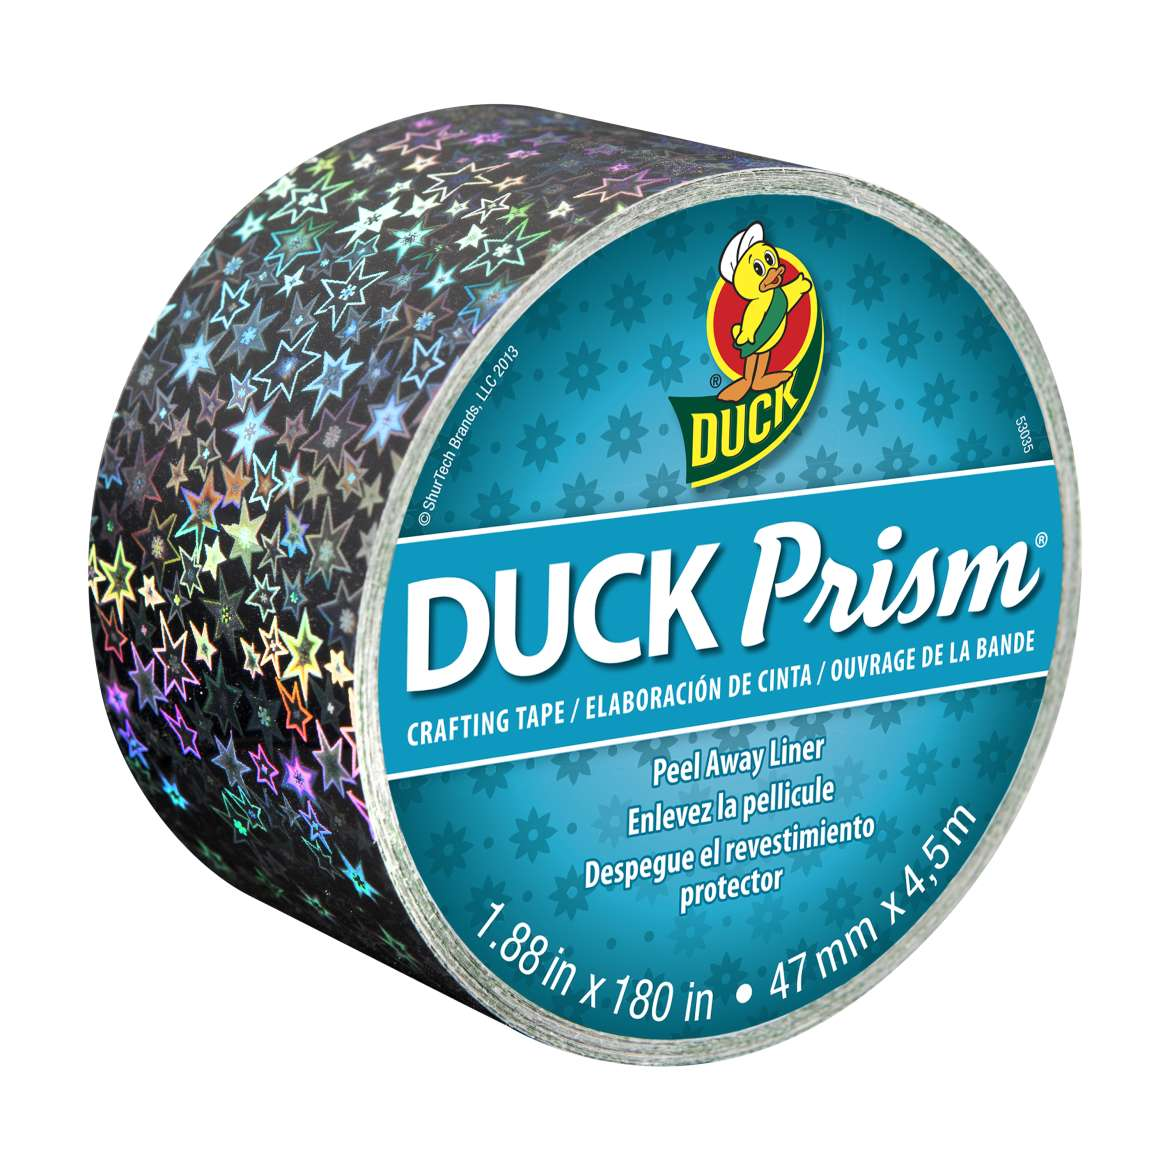 Duck Prism Crafting Tape - Small Stars, 1.88 in. x 180 in.